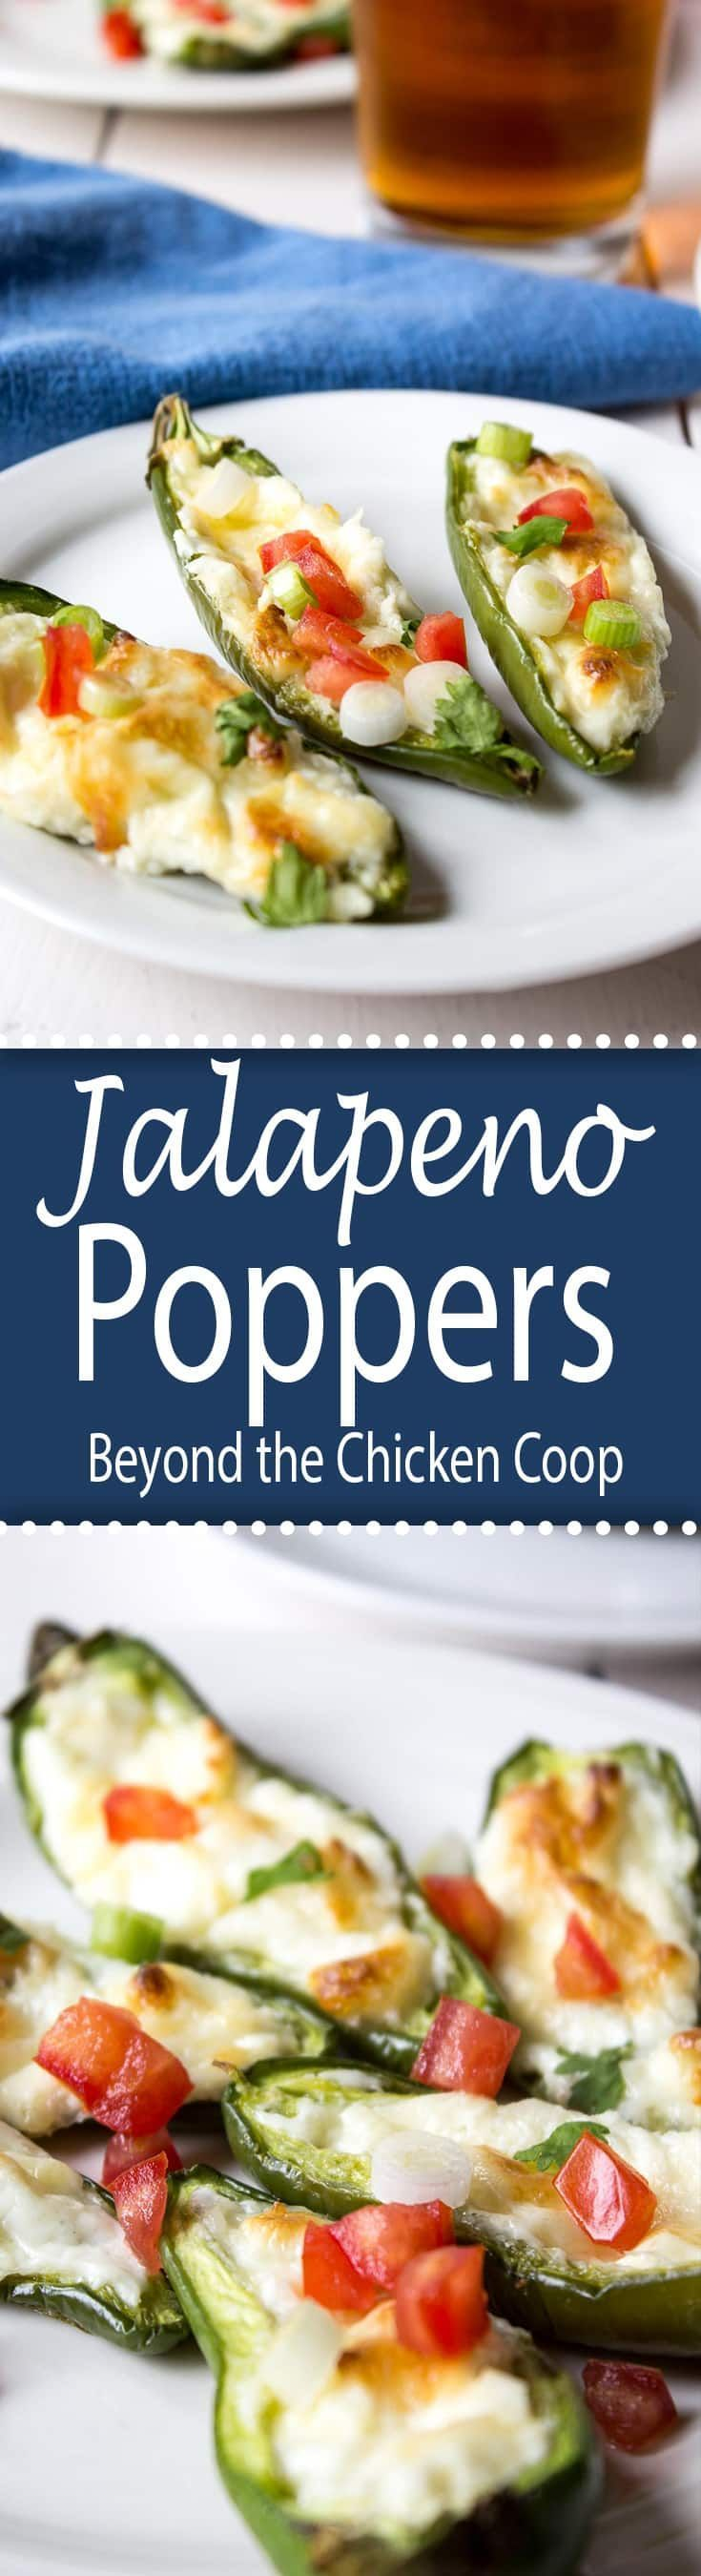 Spicy and Cheesy Jalapeno Poppers